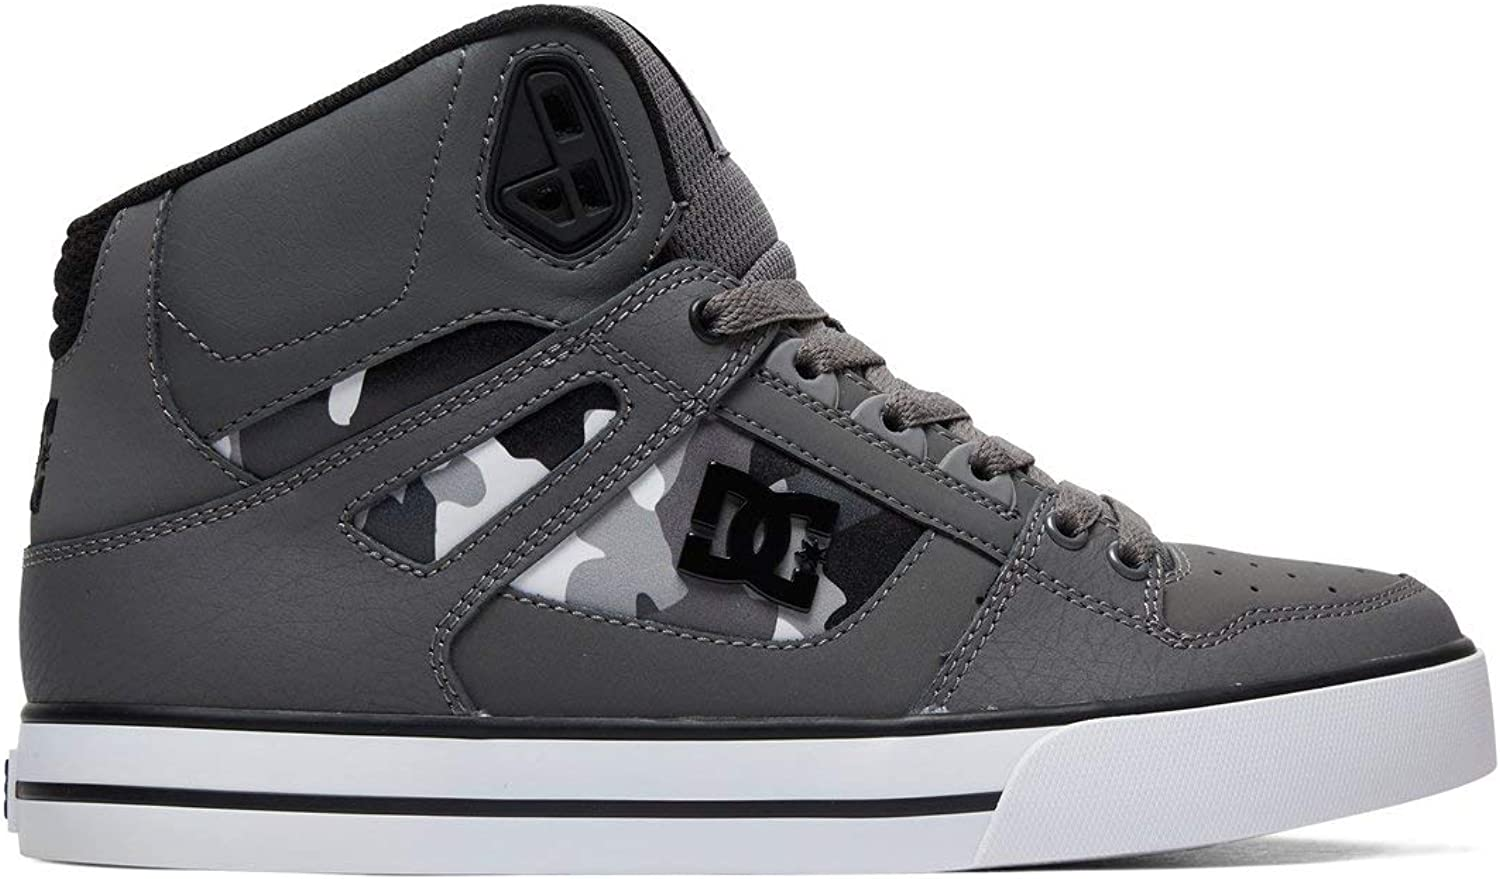 DC shoes Pure WC SP - High-Top shoes for Men - High-Top shoes - Men